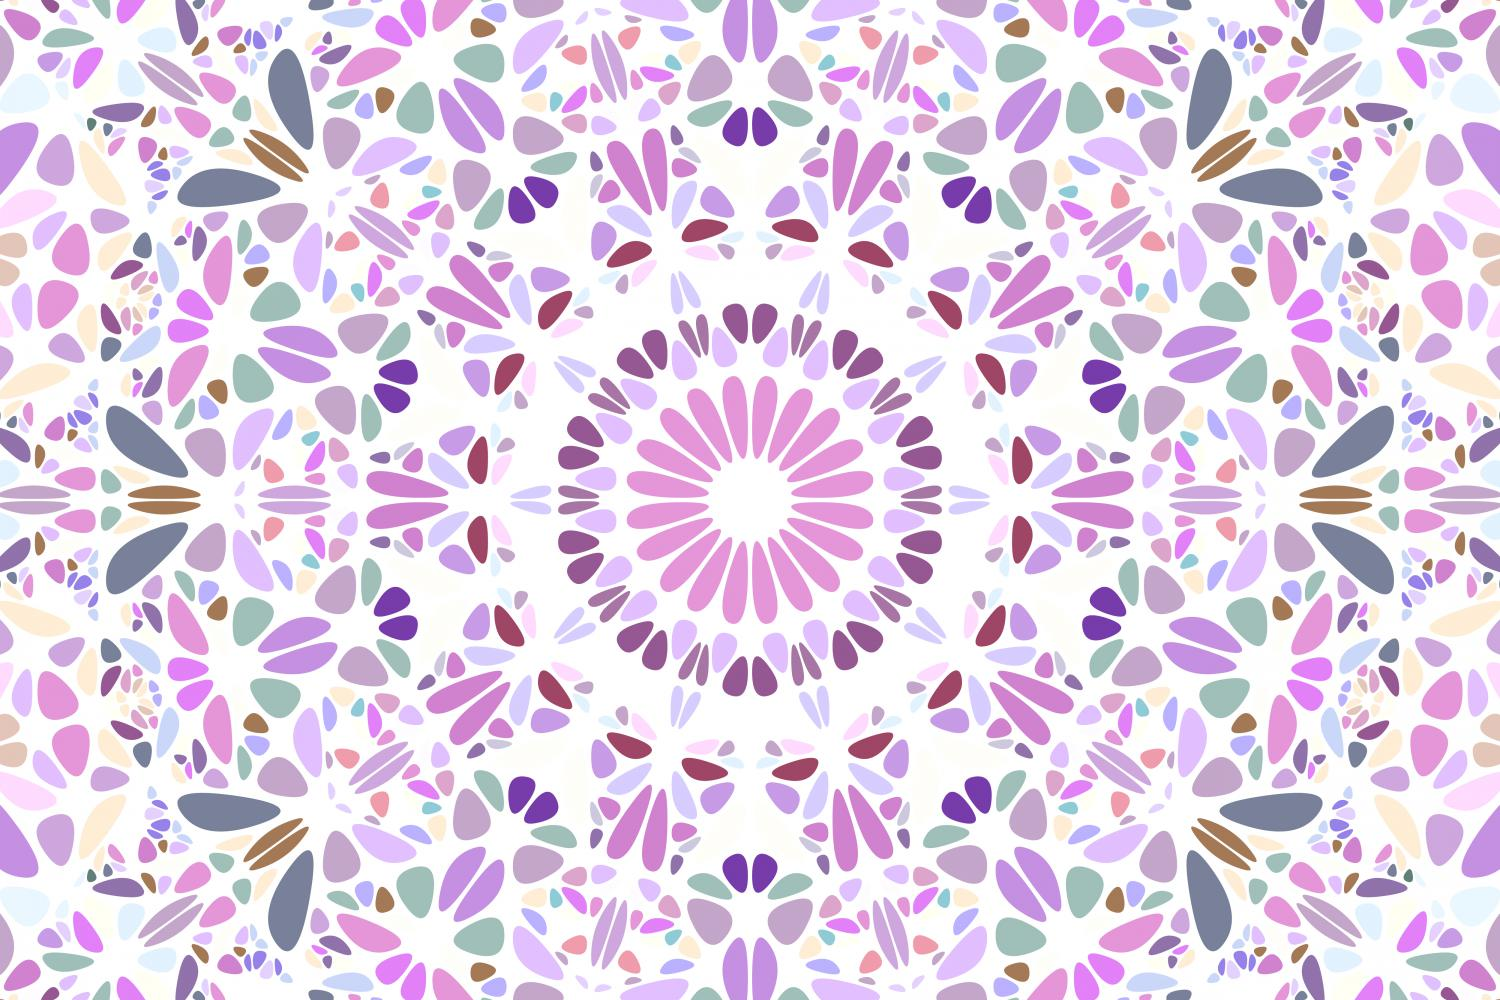 48 Floral Mandala Backgrounds example image 22